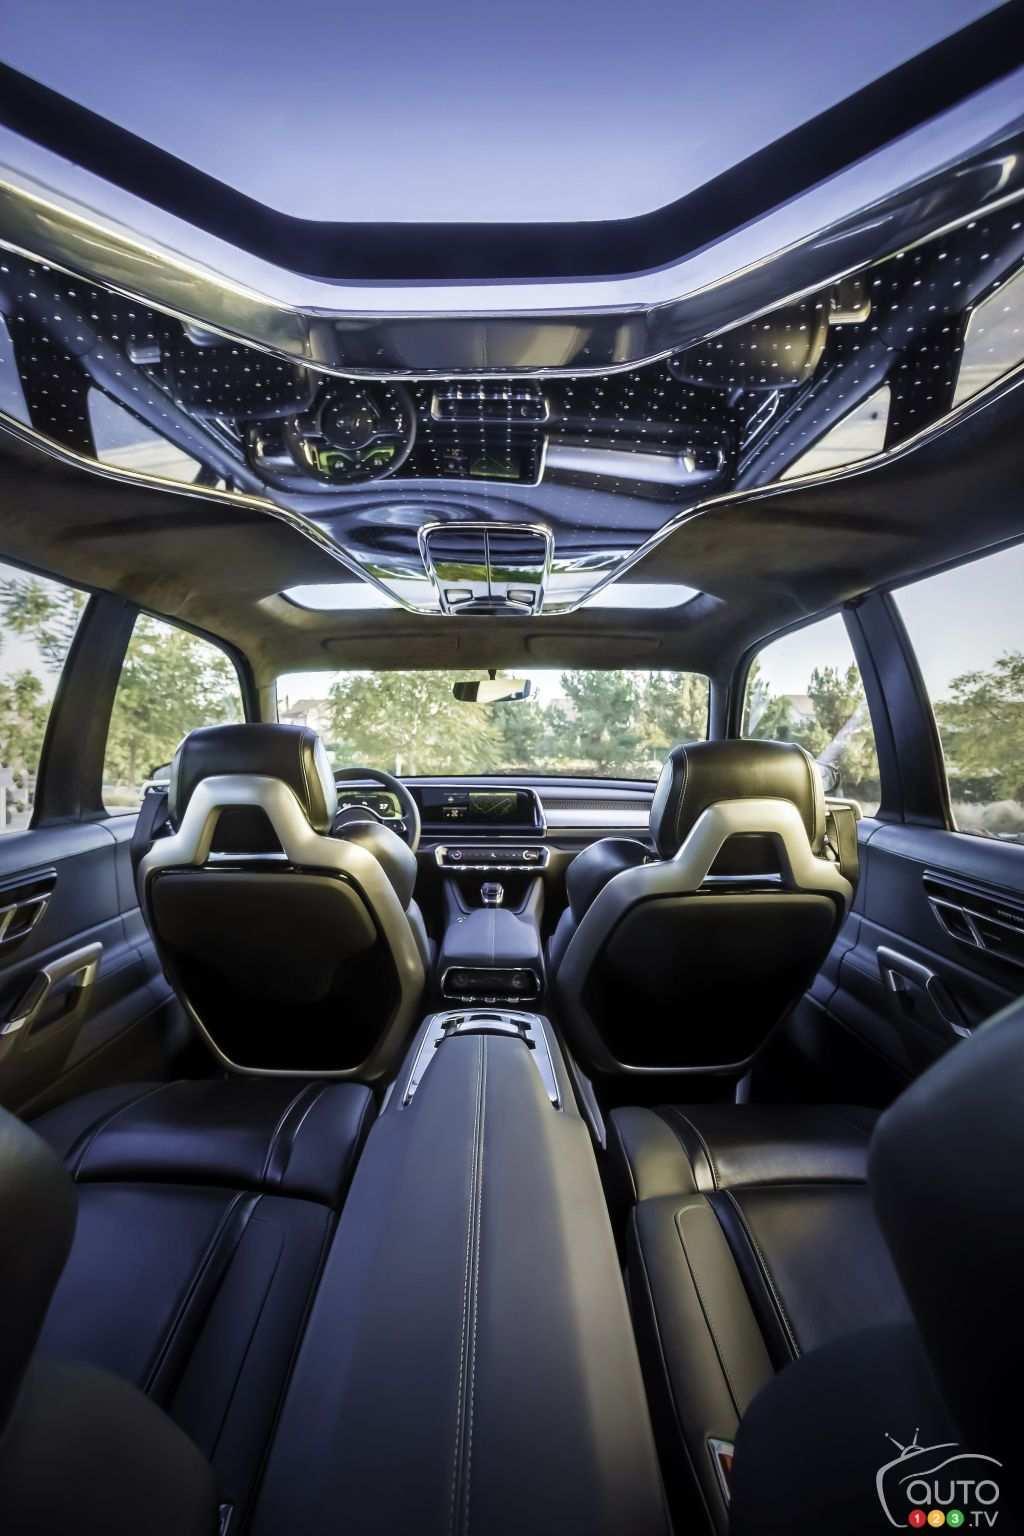 28 The Best 2020 Kia Telluride Interior Redesign And Review